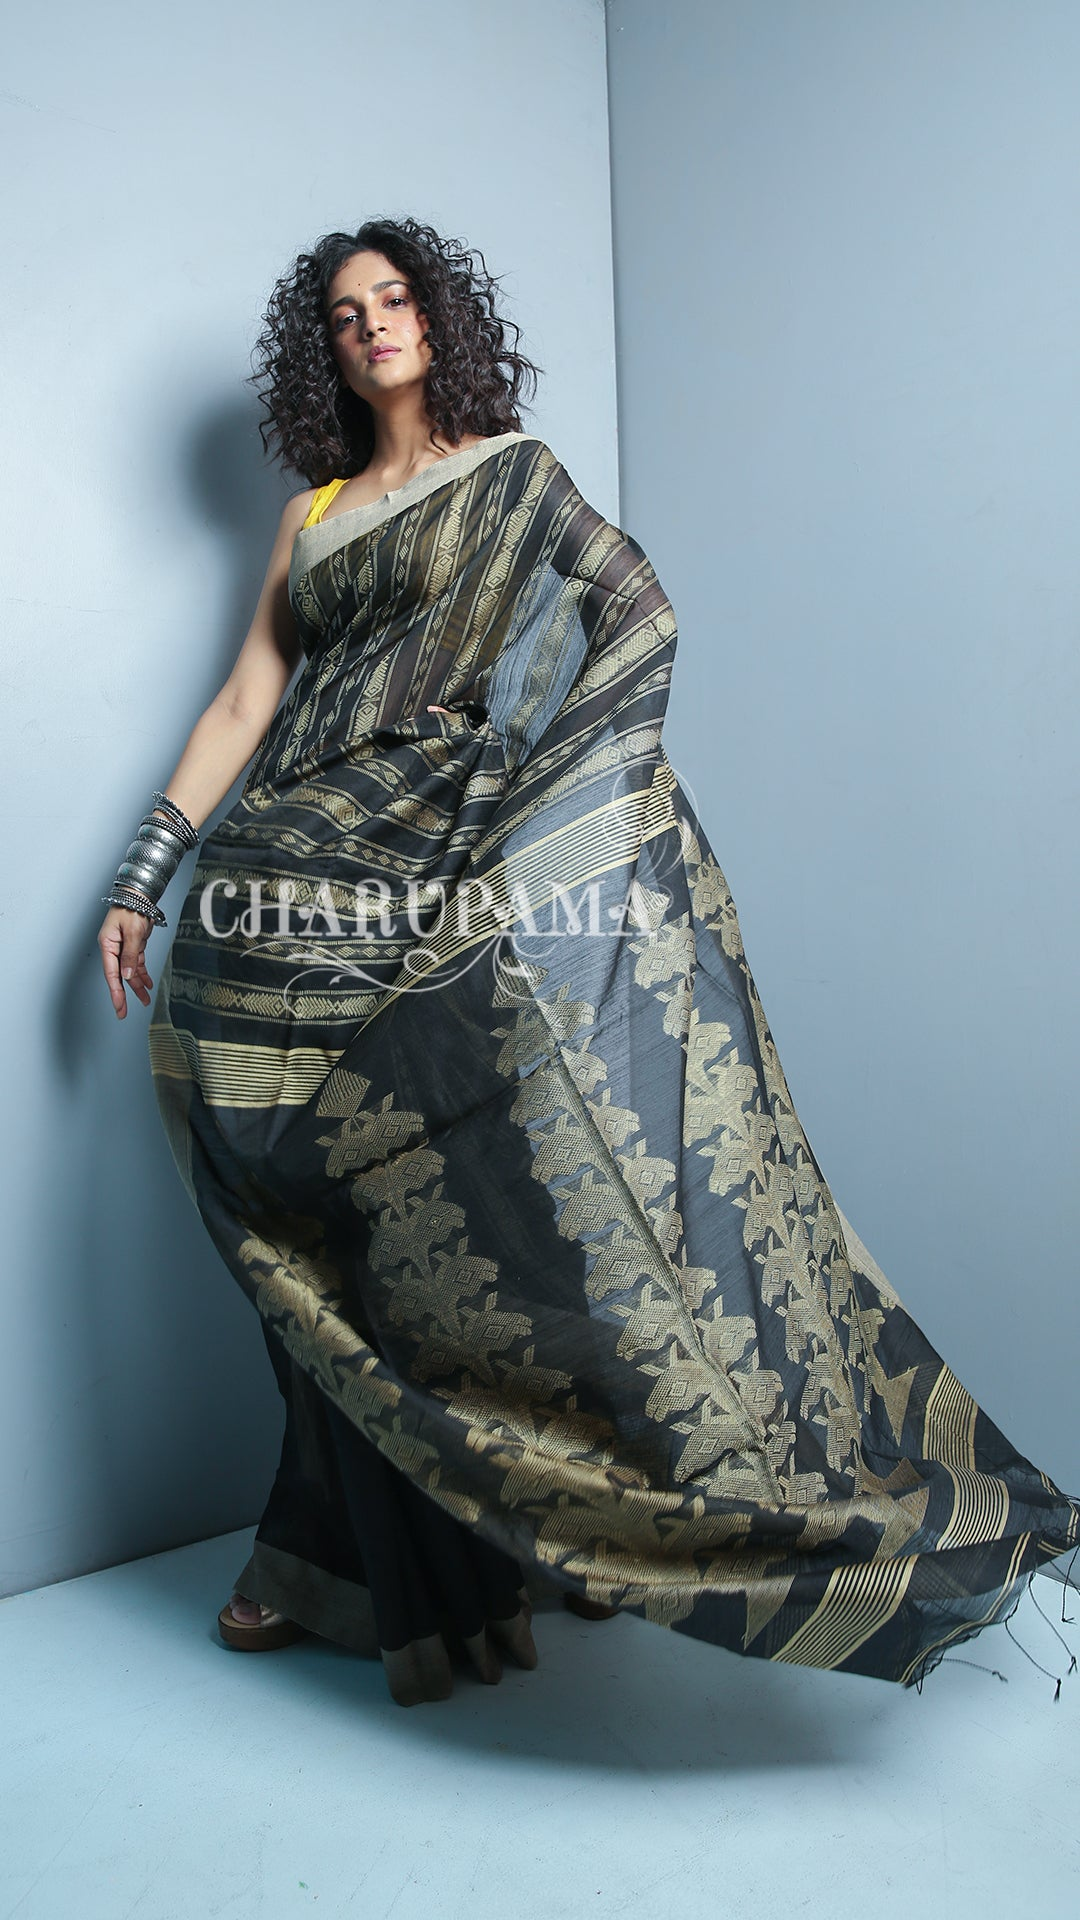 Color Beige Is Neutral, Calm, And Relaxing And With Black Combination This Saree Represents Warm Color With A Cool Color. This Handwoven Blended Cotton Saree Is Great Pick For Summer And Autumn Season. - Charupama